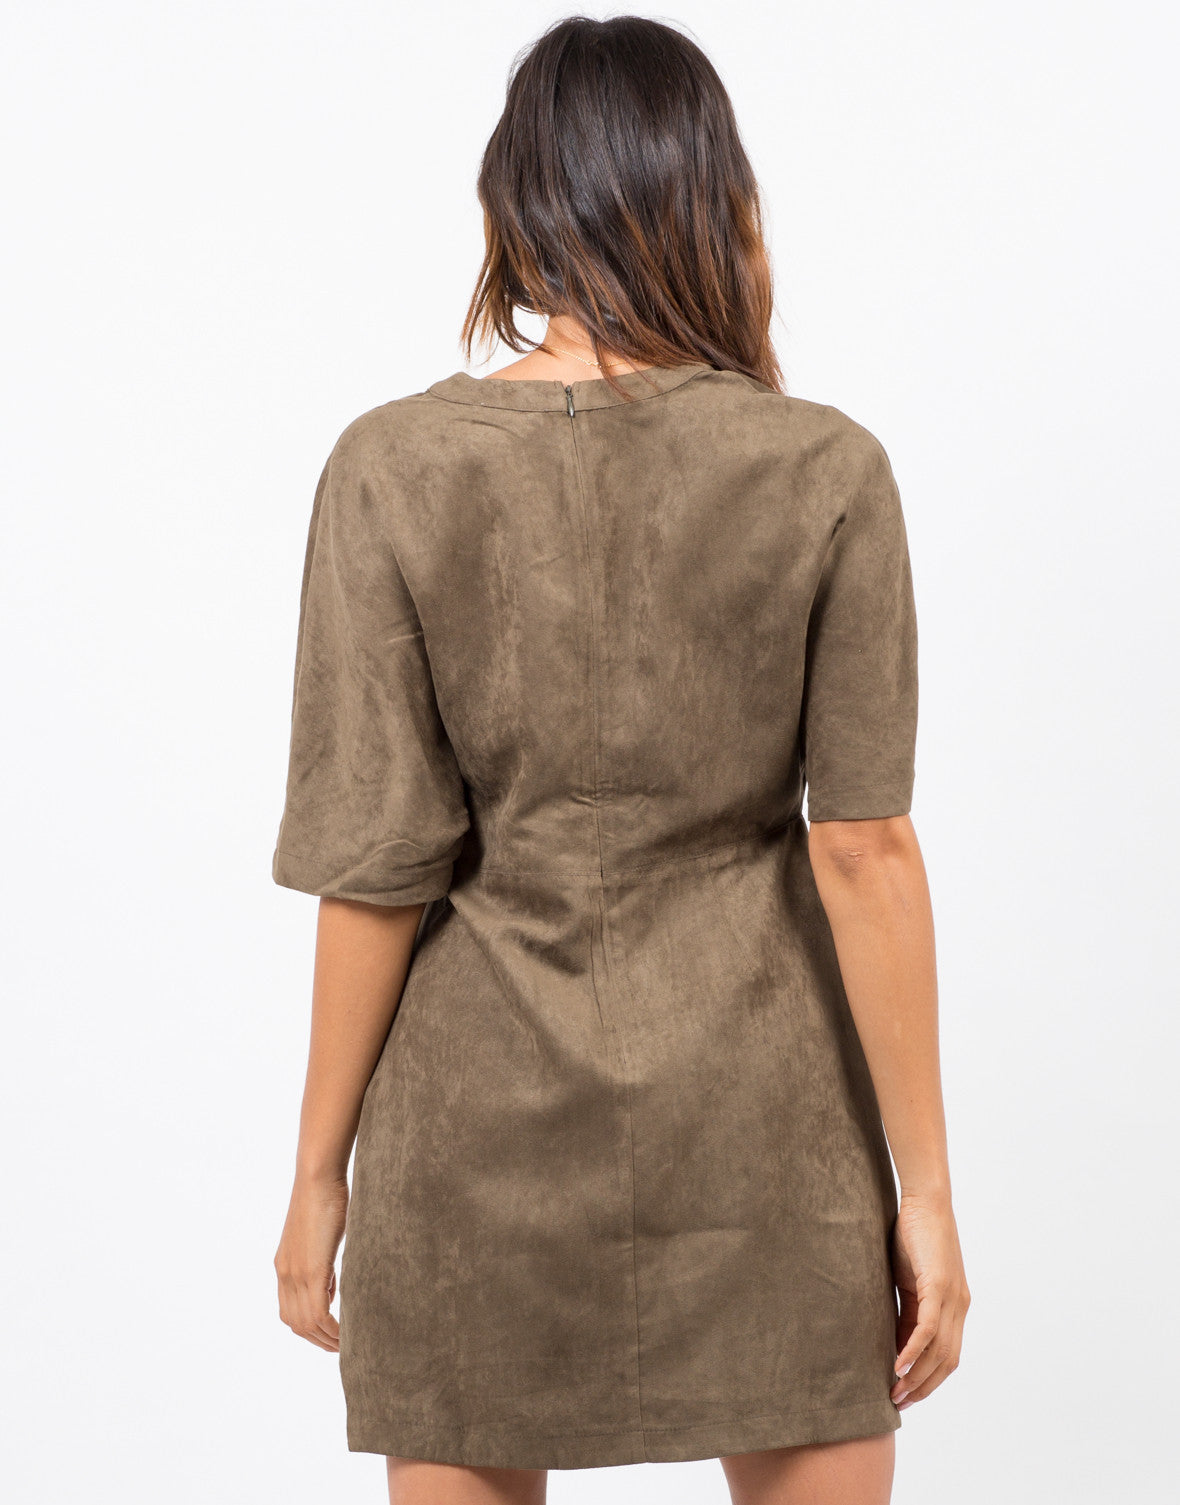 Back View of Suede Lace Up T-Shirt Dress